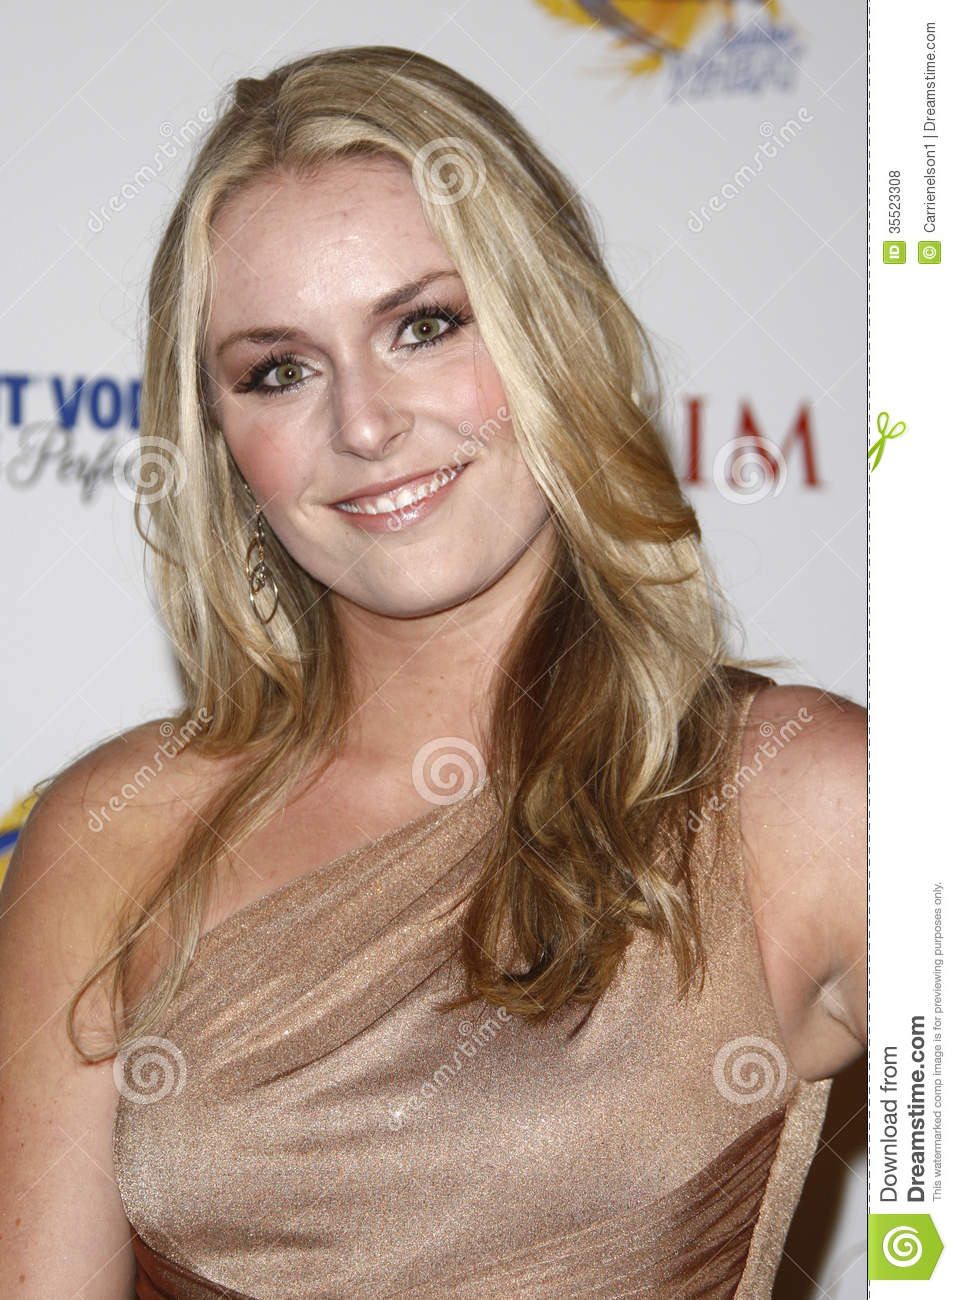 <b>Lindsey Vonn</b> Photo stock éditorial - lindsey-vonn-35523308